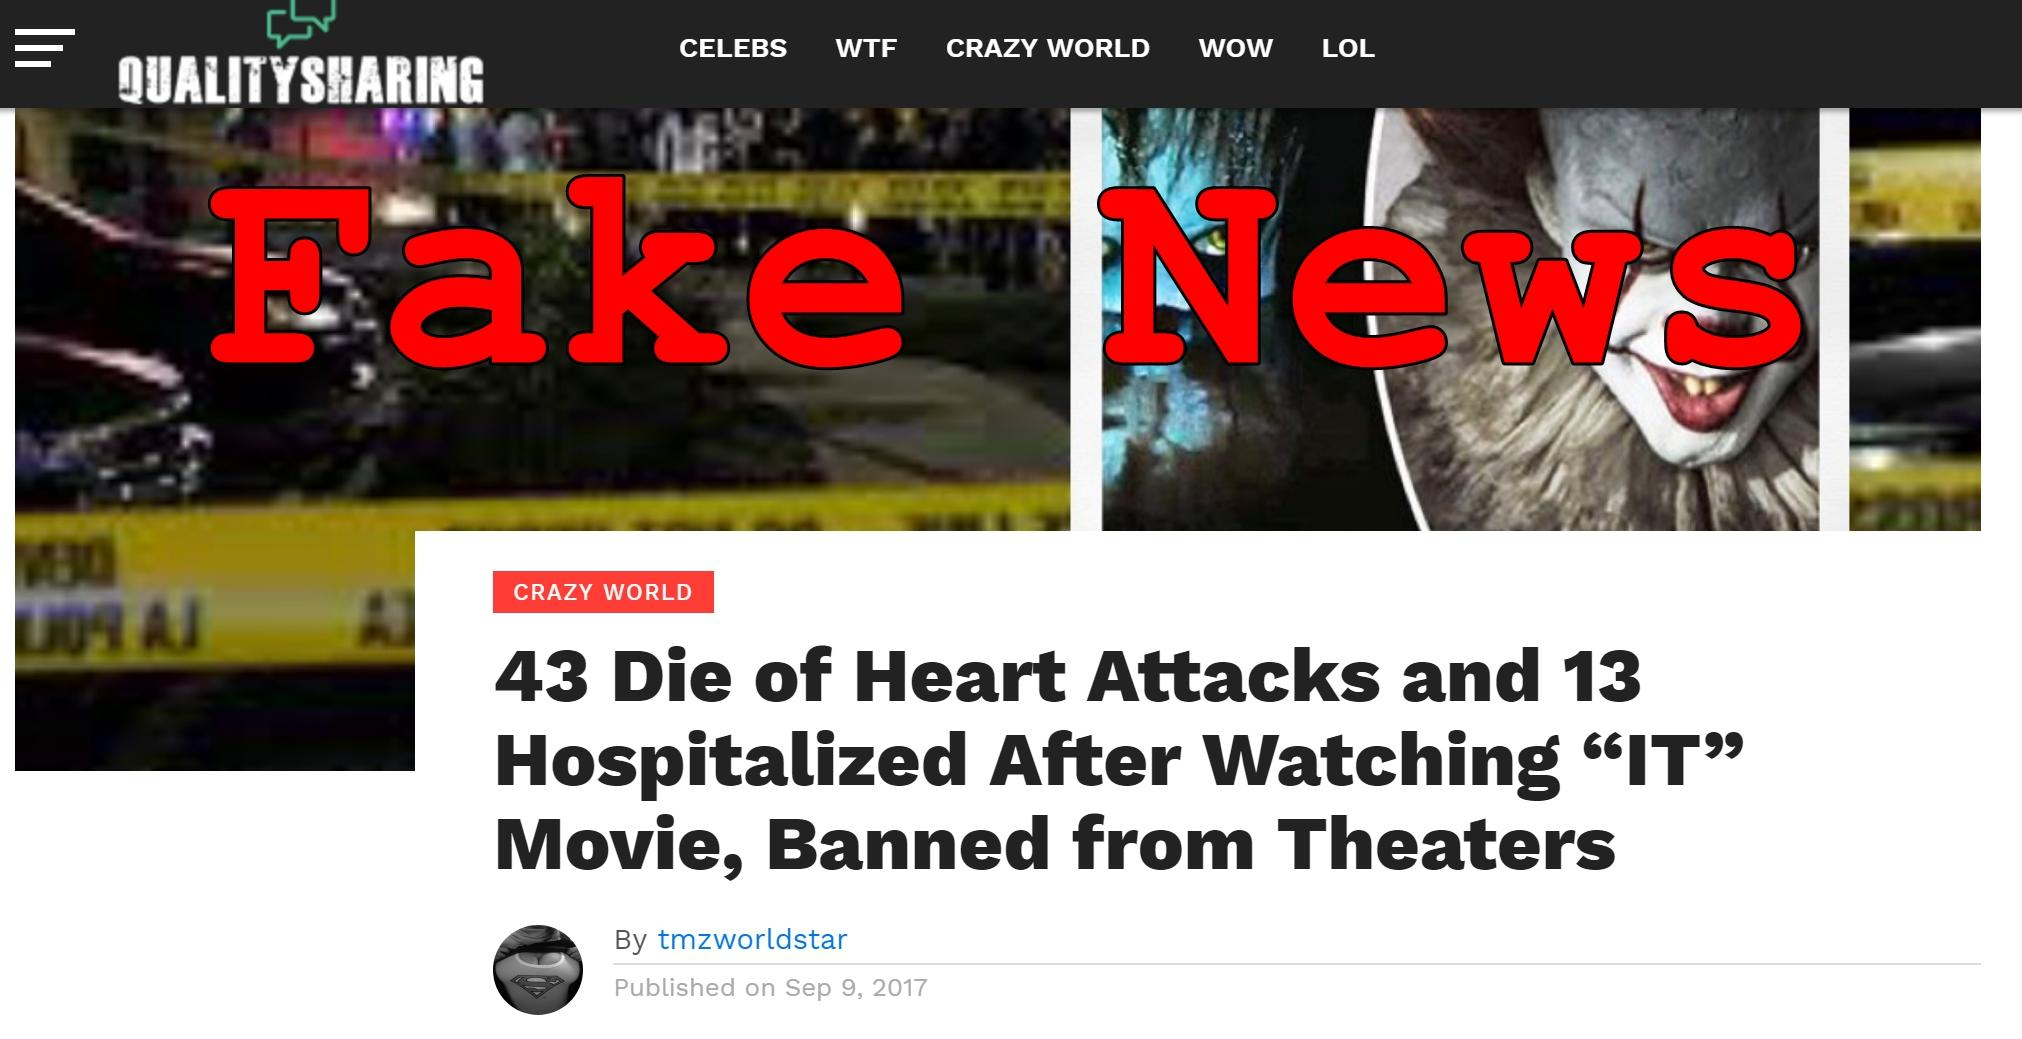 """Fake News: 43 Did NOT Die of Heart Attacks, NO 13 Hospitalized After Watching """"IT"""" Movie, NOT Banned from Theaters"""